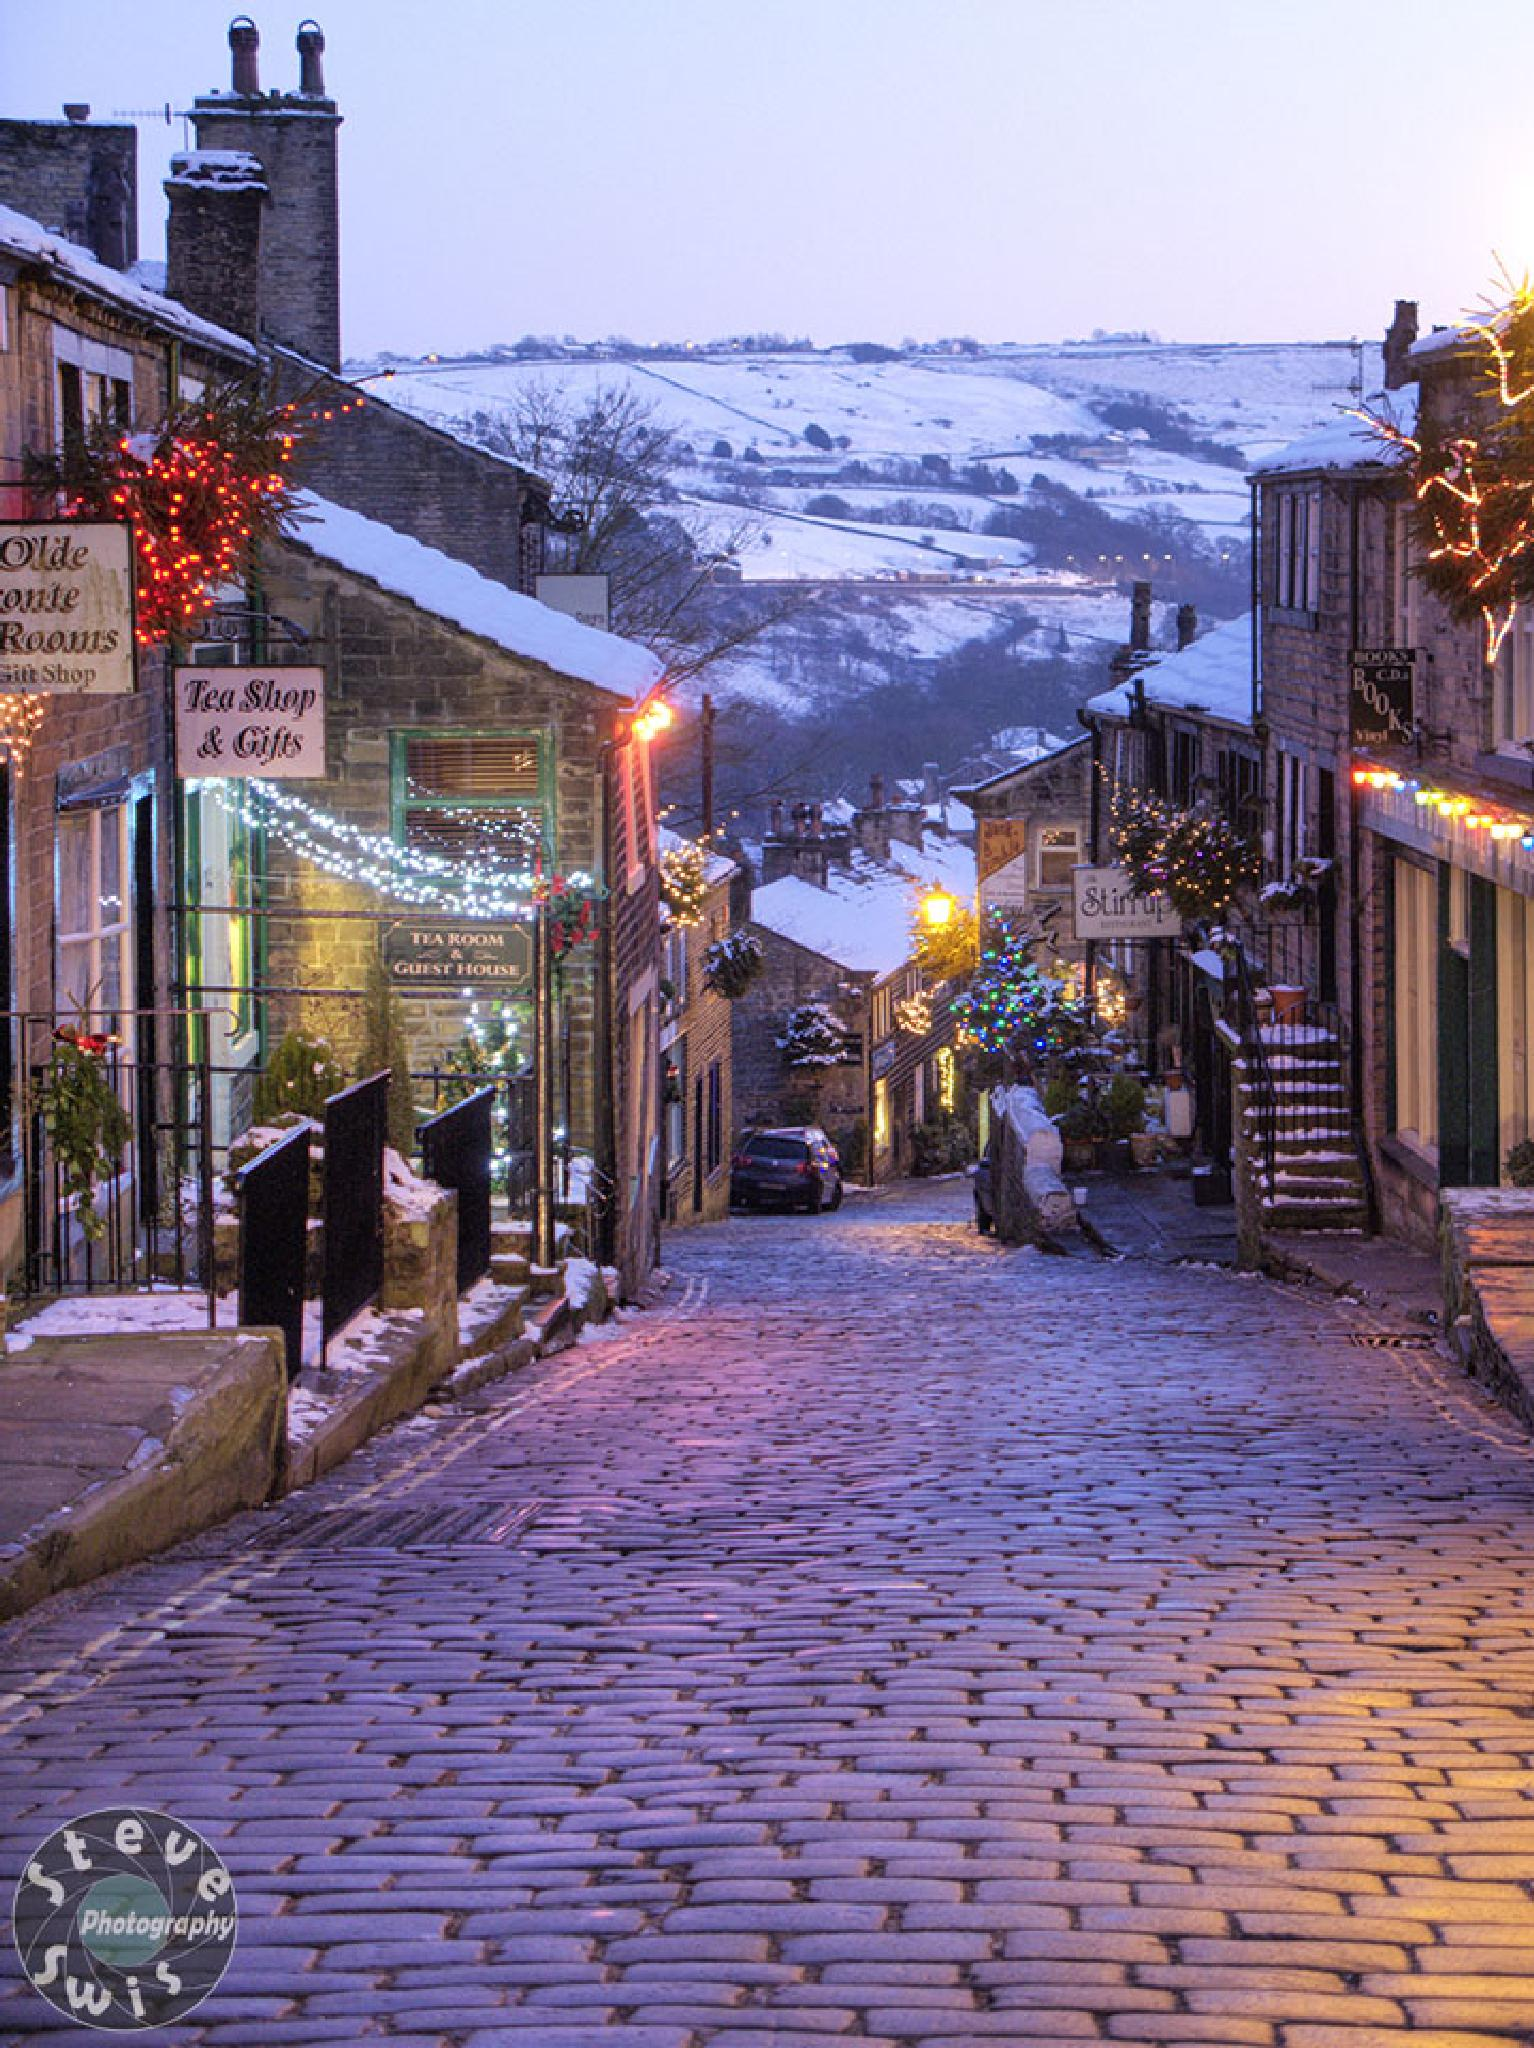 Haworth at Christmas time by Steve Swis